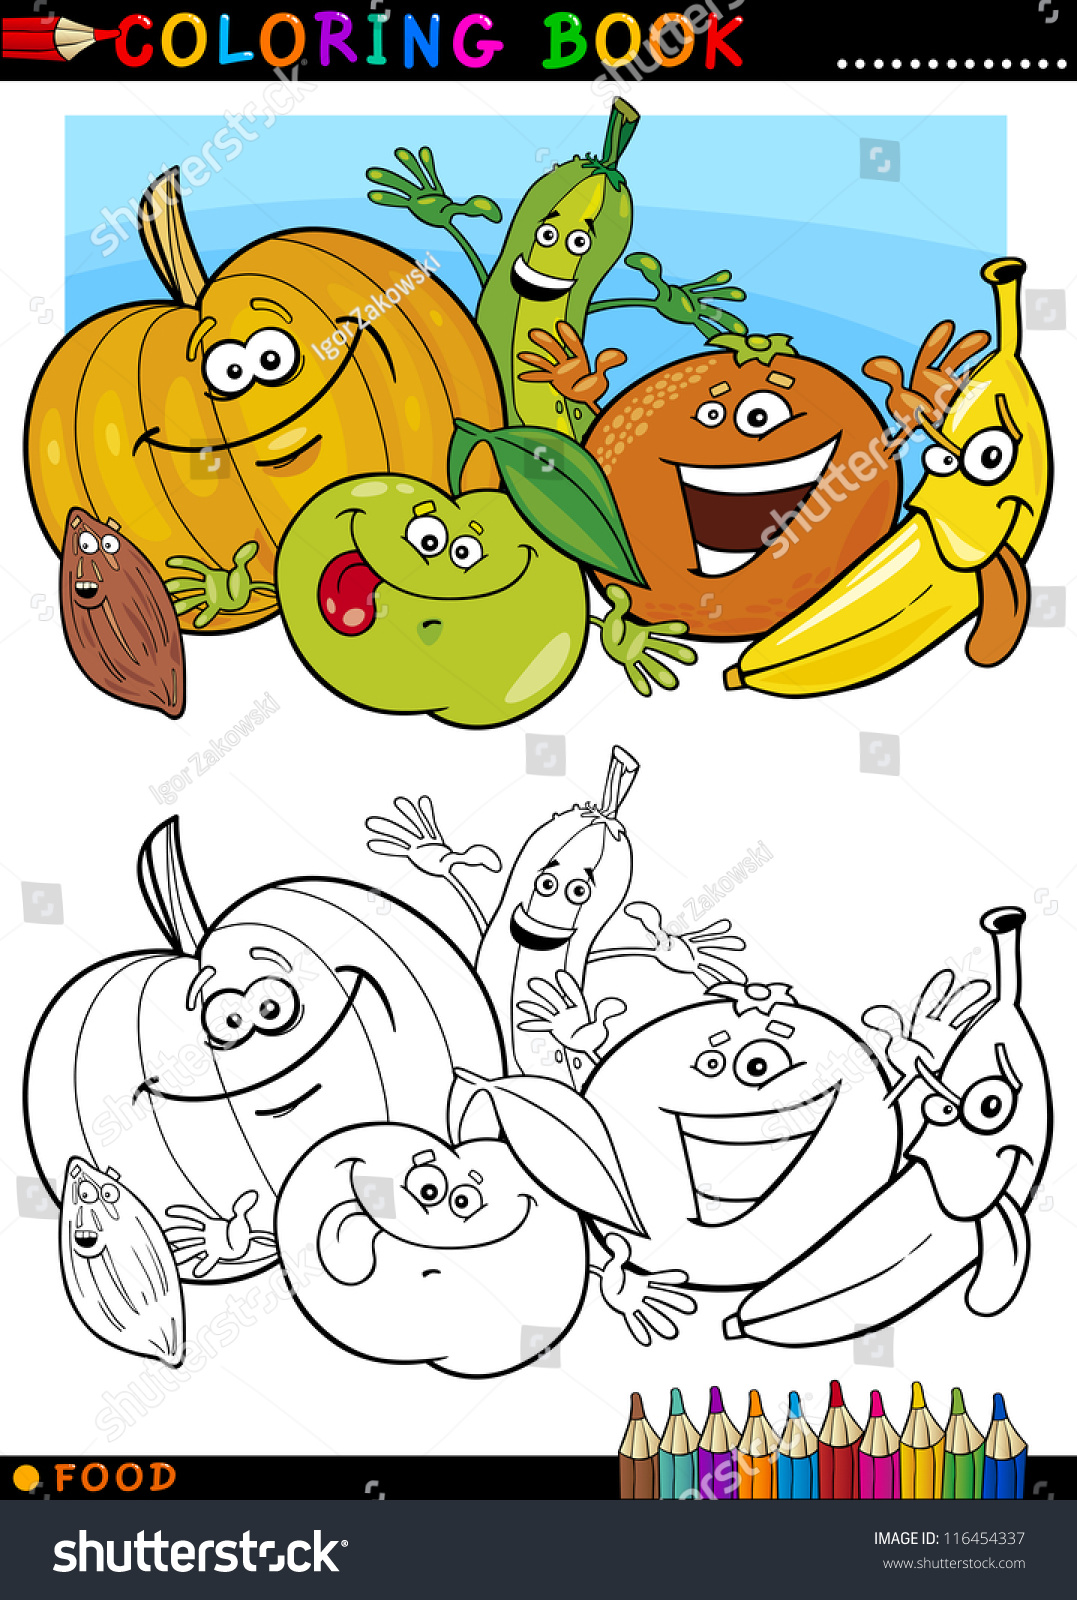 Coloring book pictures of vegetables - Coloring Book Or Page Cartoon Illustration Of Funny Food Characters Fruits And Vegetables For Children Education